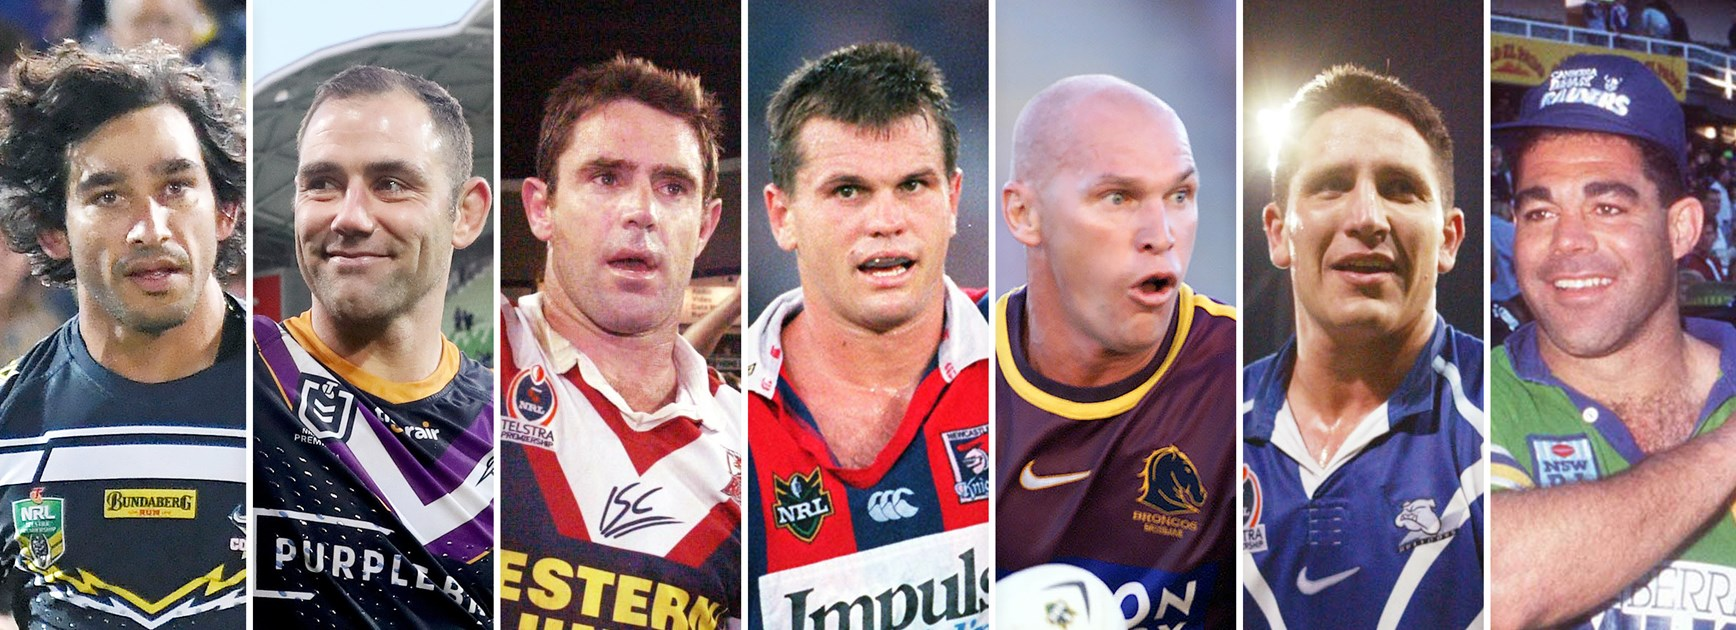 Who is best captain of the modern era - Lockyer or Smith?